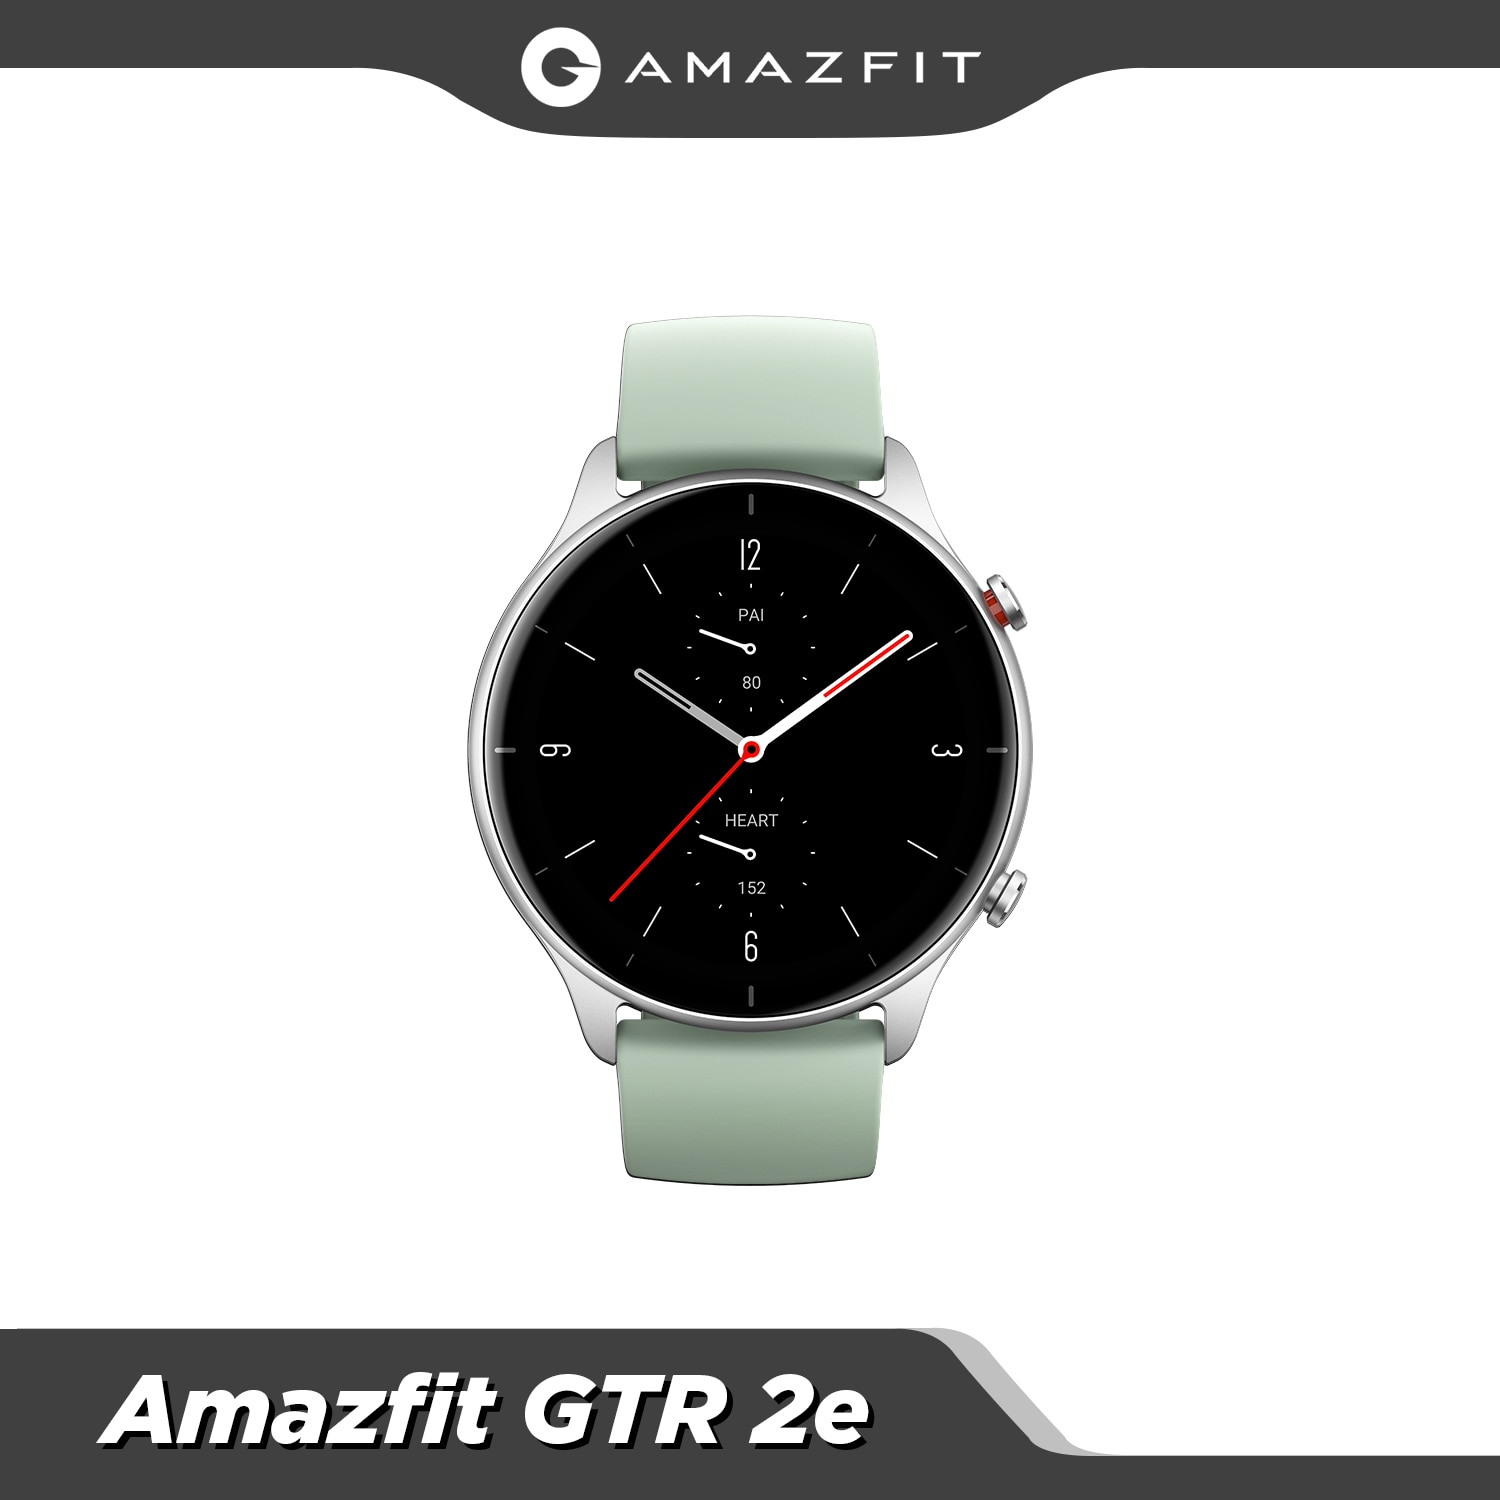 2021 Global Version Amazfit GTR 2e Smartwatch Answer Call 5 ATM Fitness Tracking Big Battery Smart Watch for Andriod for IOS